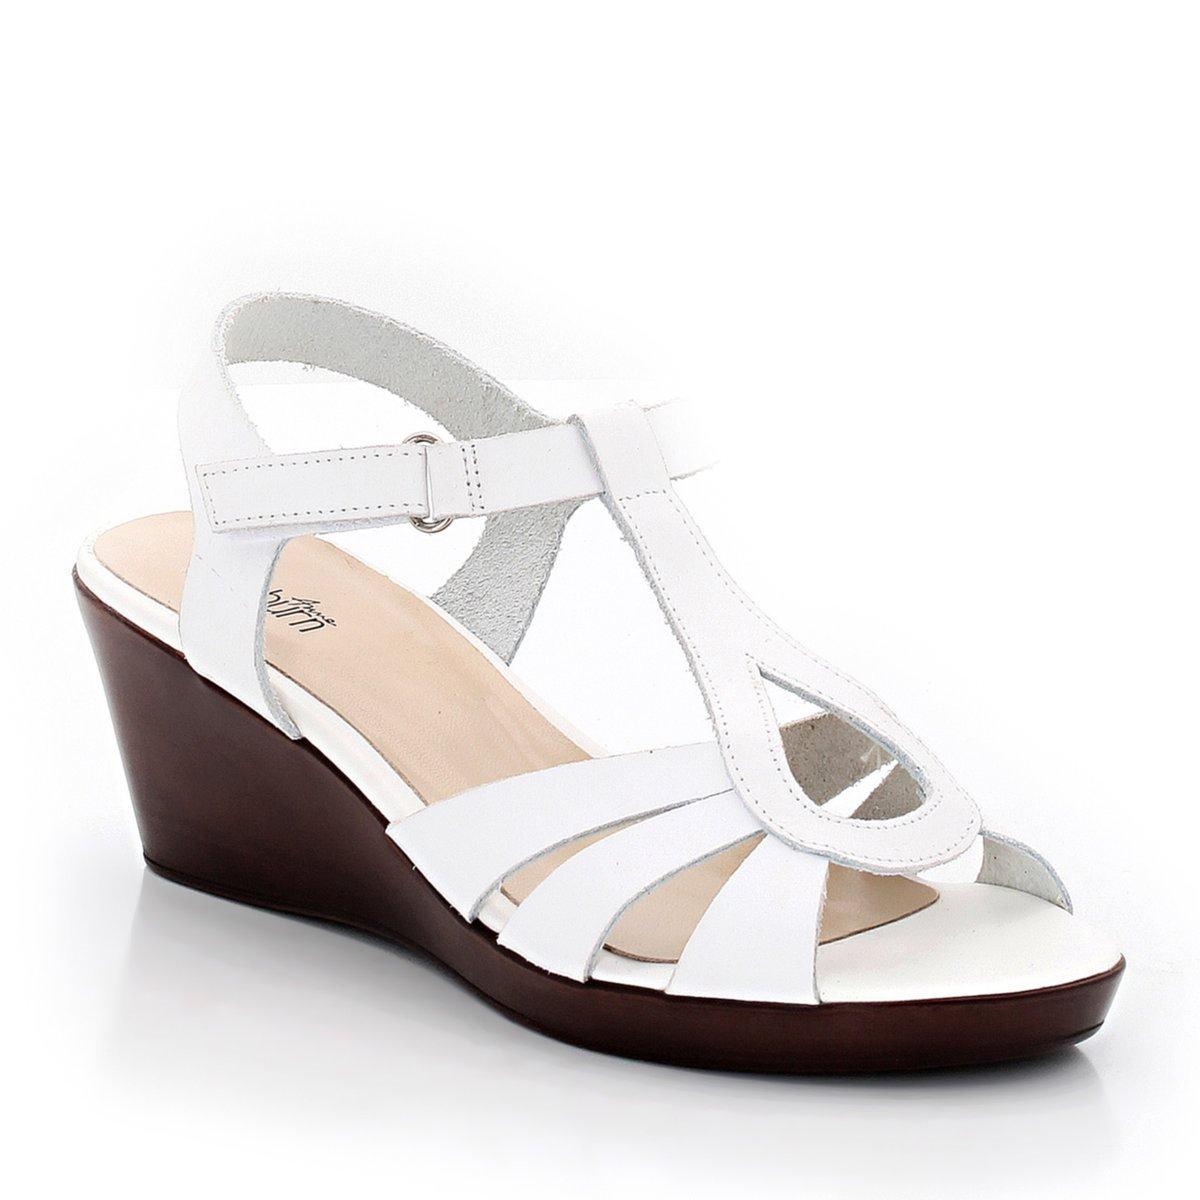 La Redoute Anne Weyburn Womens Leather Wedge Sandals With